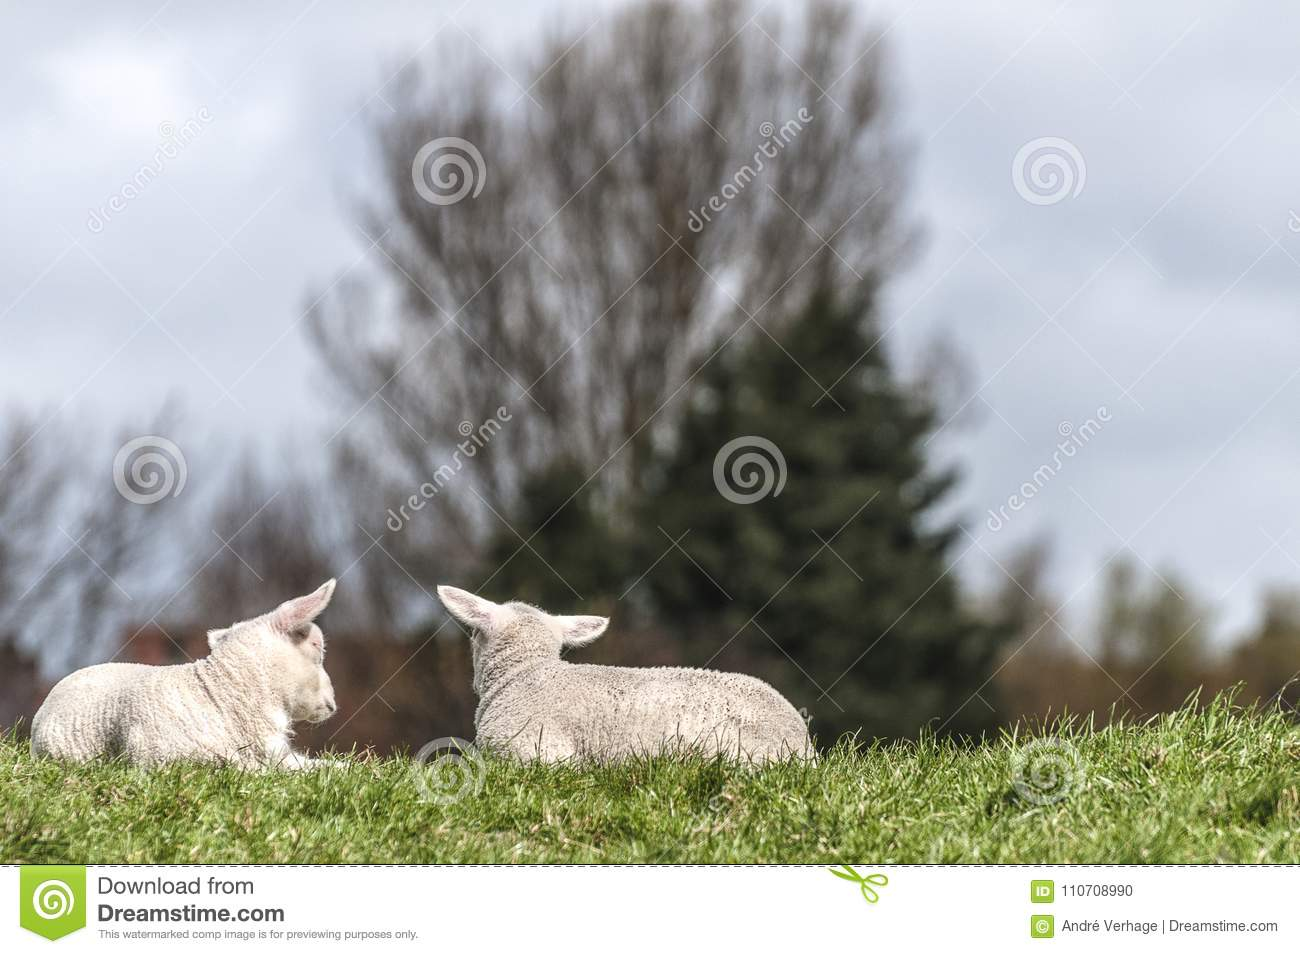 Two lambs lying together on the lawn